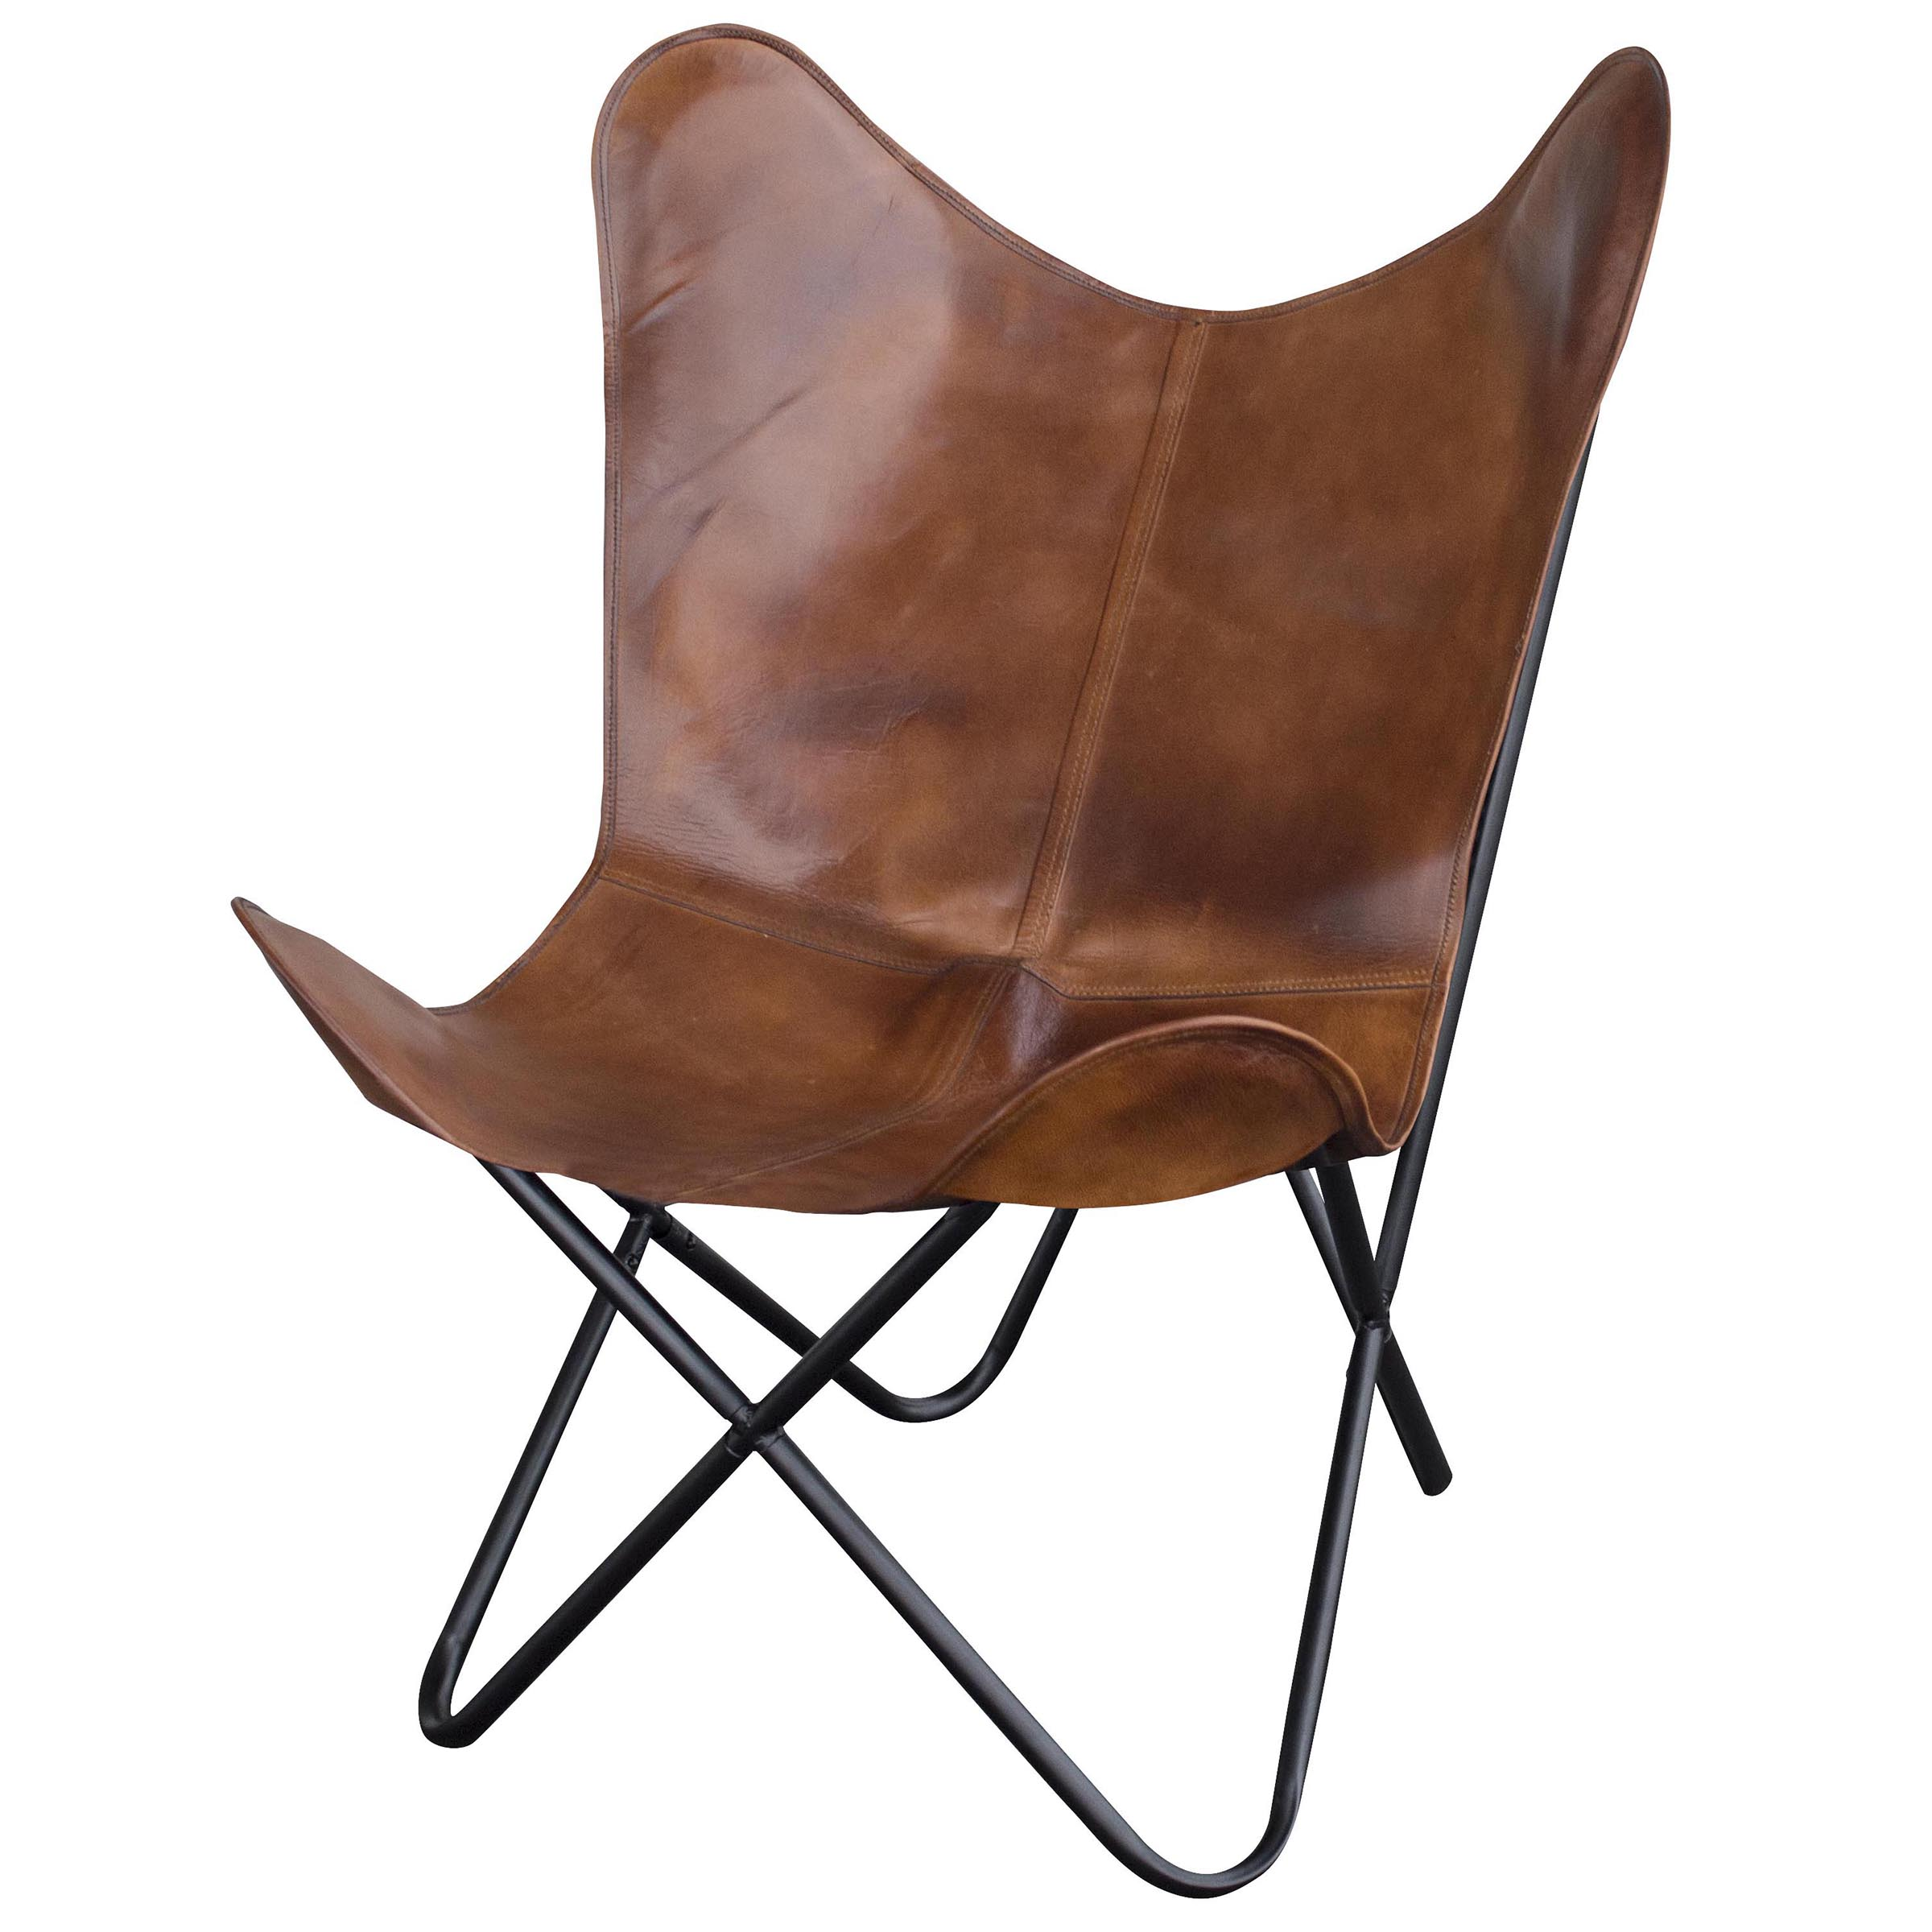 Amerihome Leather Butterfly Chair in Natural Tan  Walmartcom